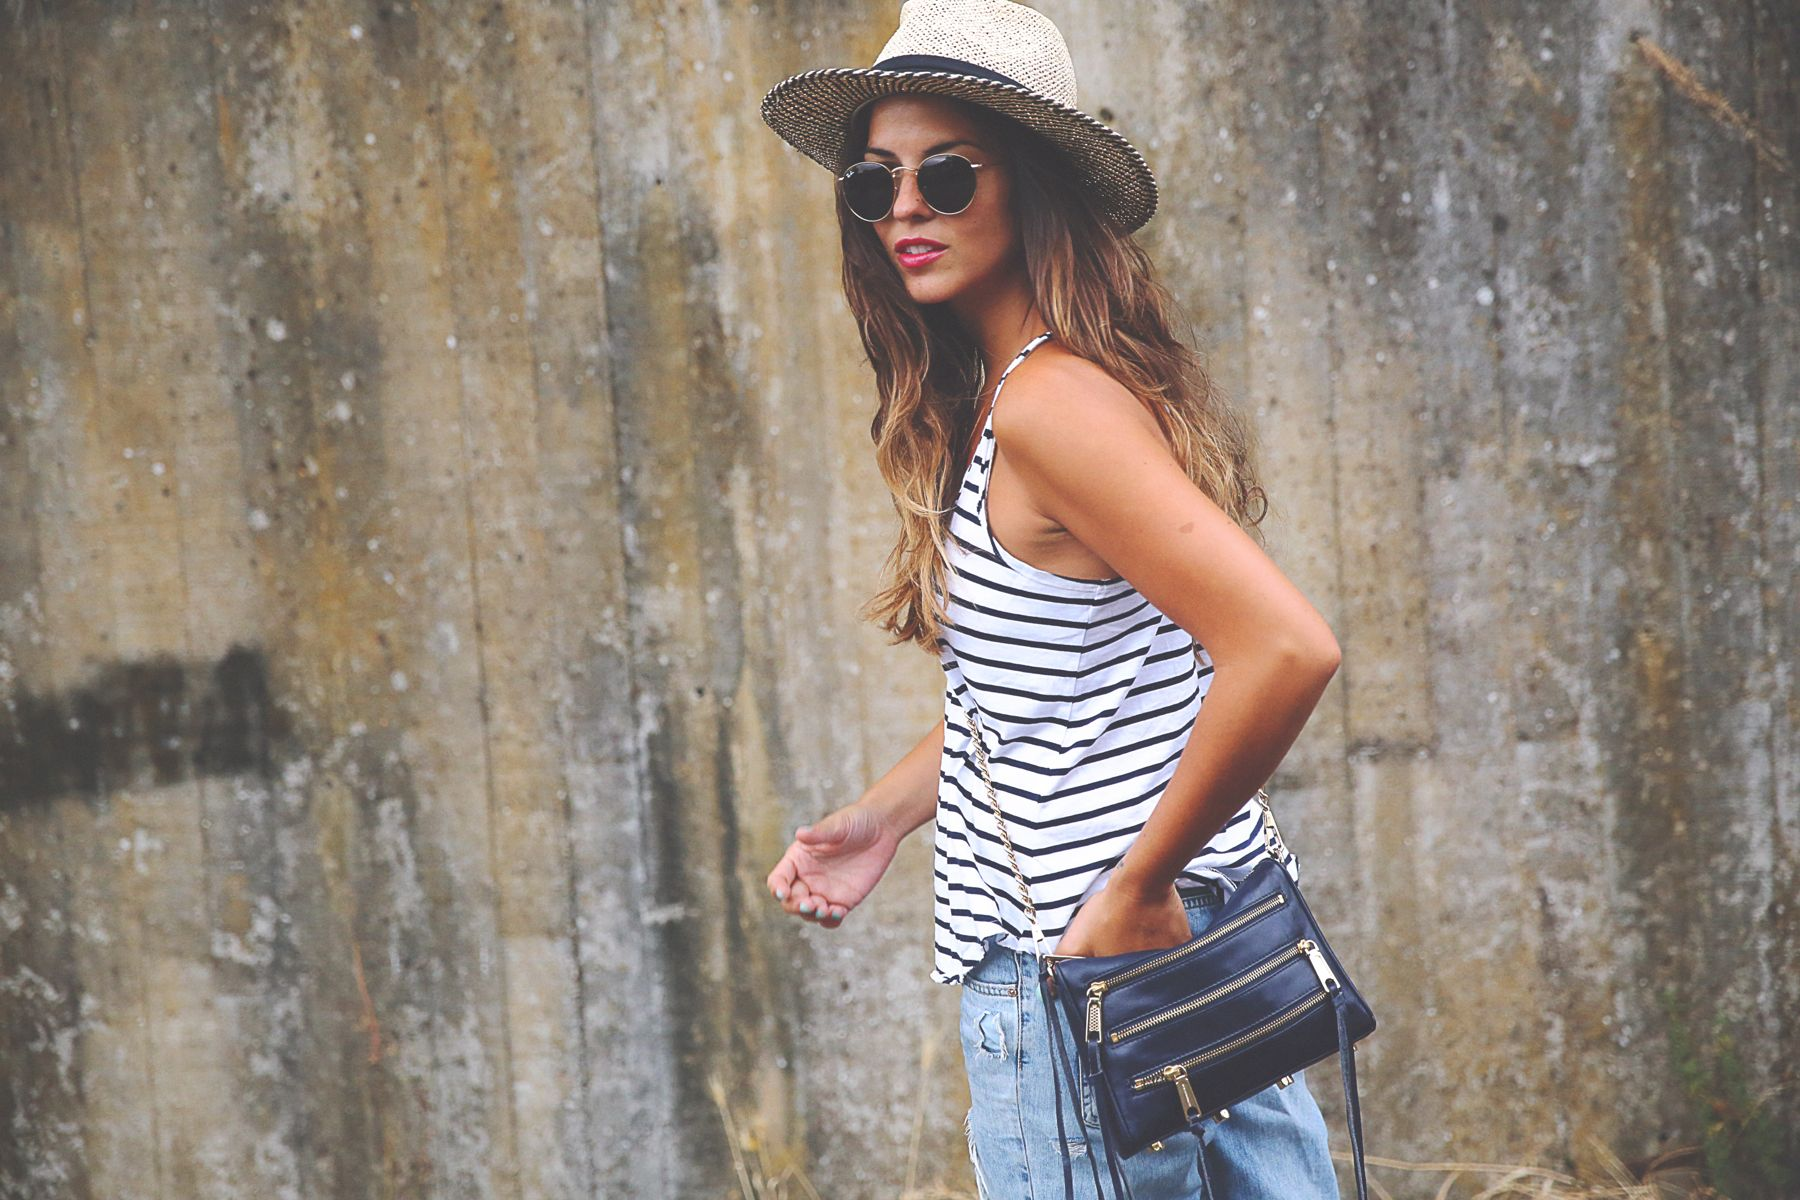 Navy Style Outfit